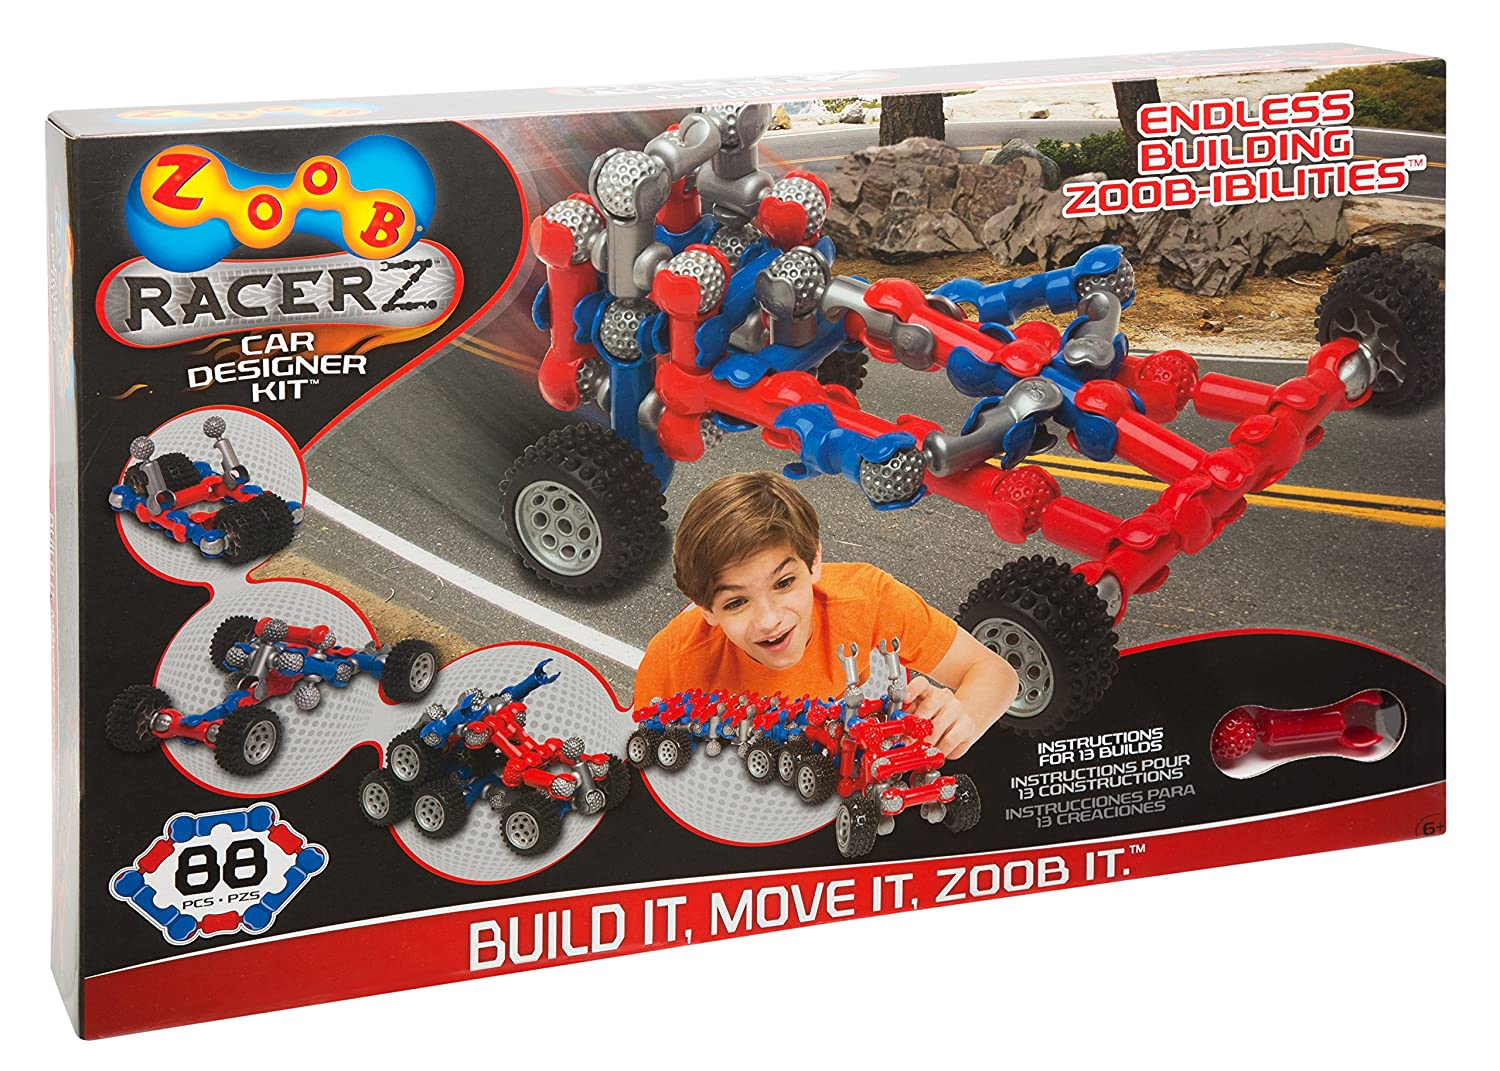 Fun Toys For Big Boys : Toys for big boys the best teen gift canyon